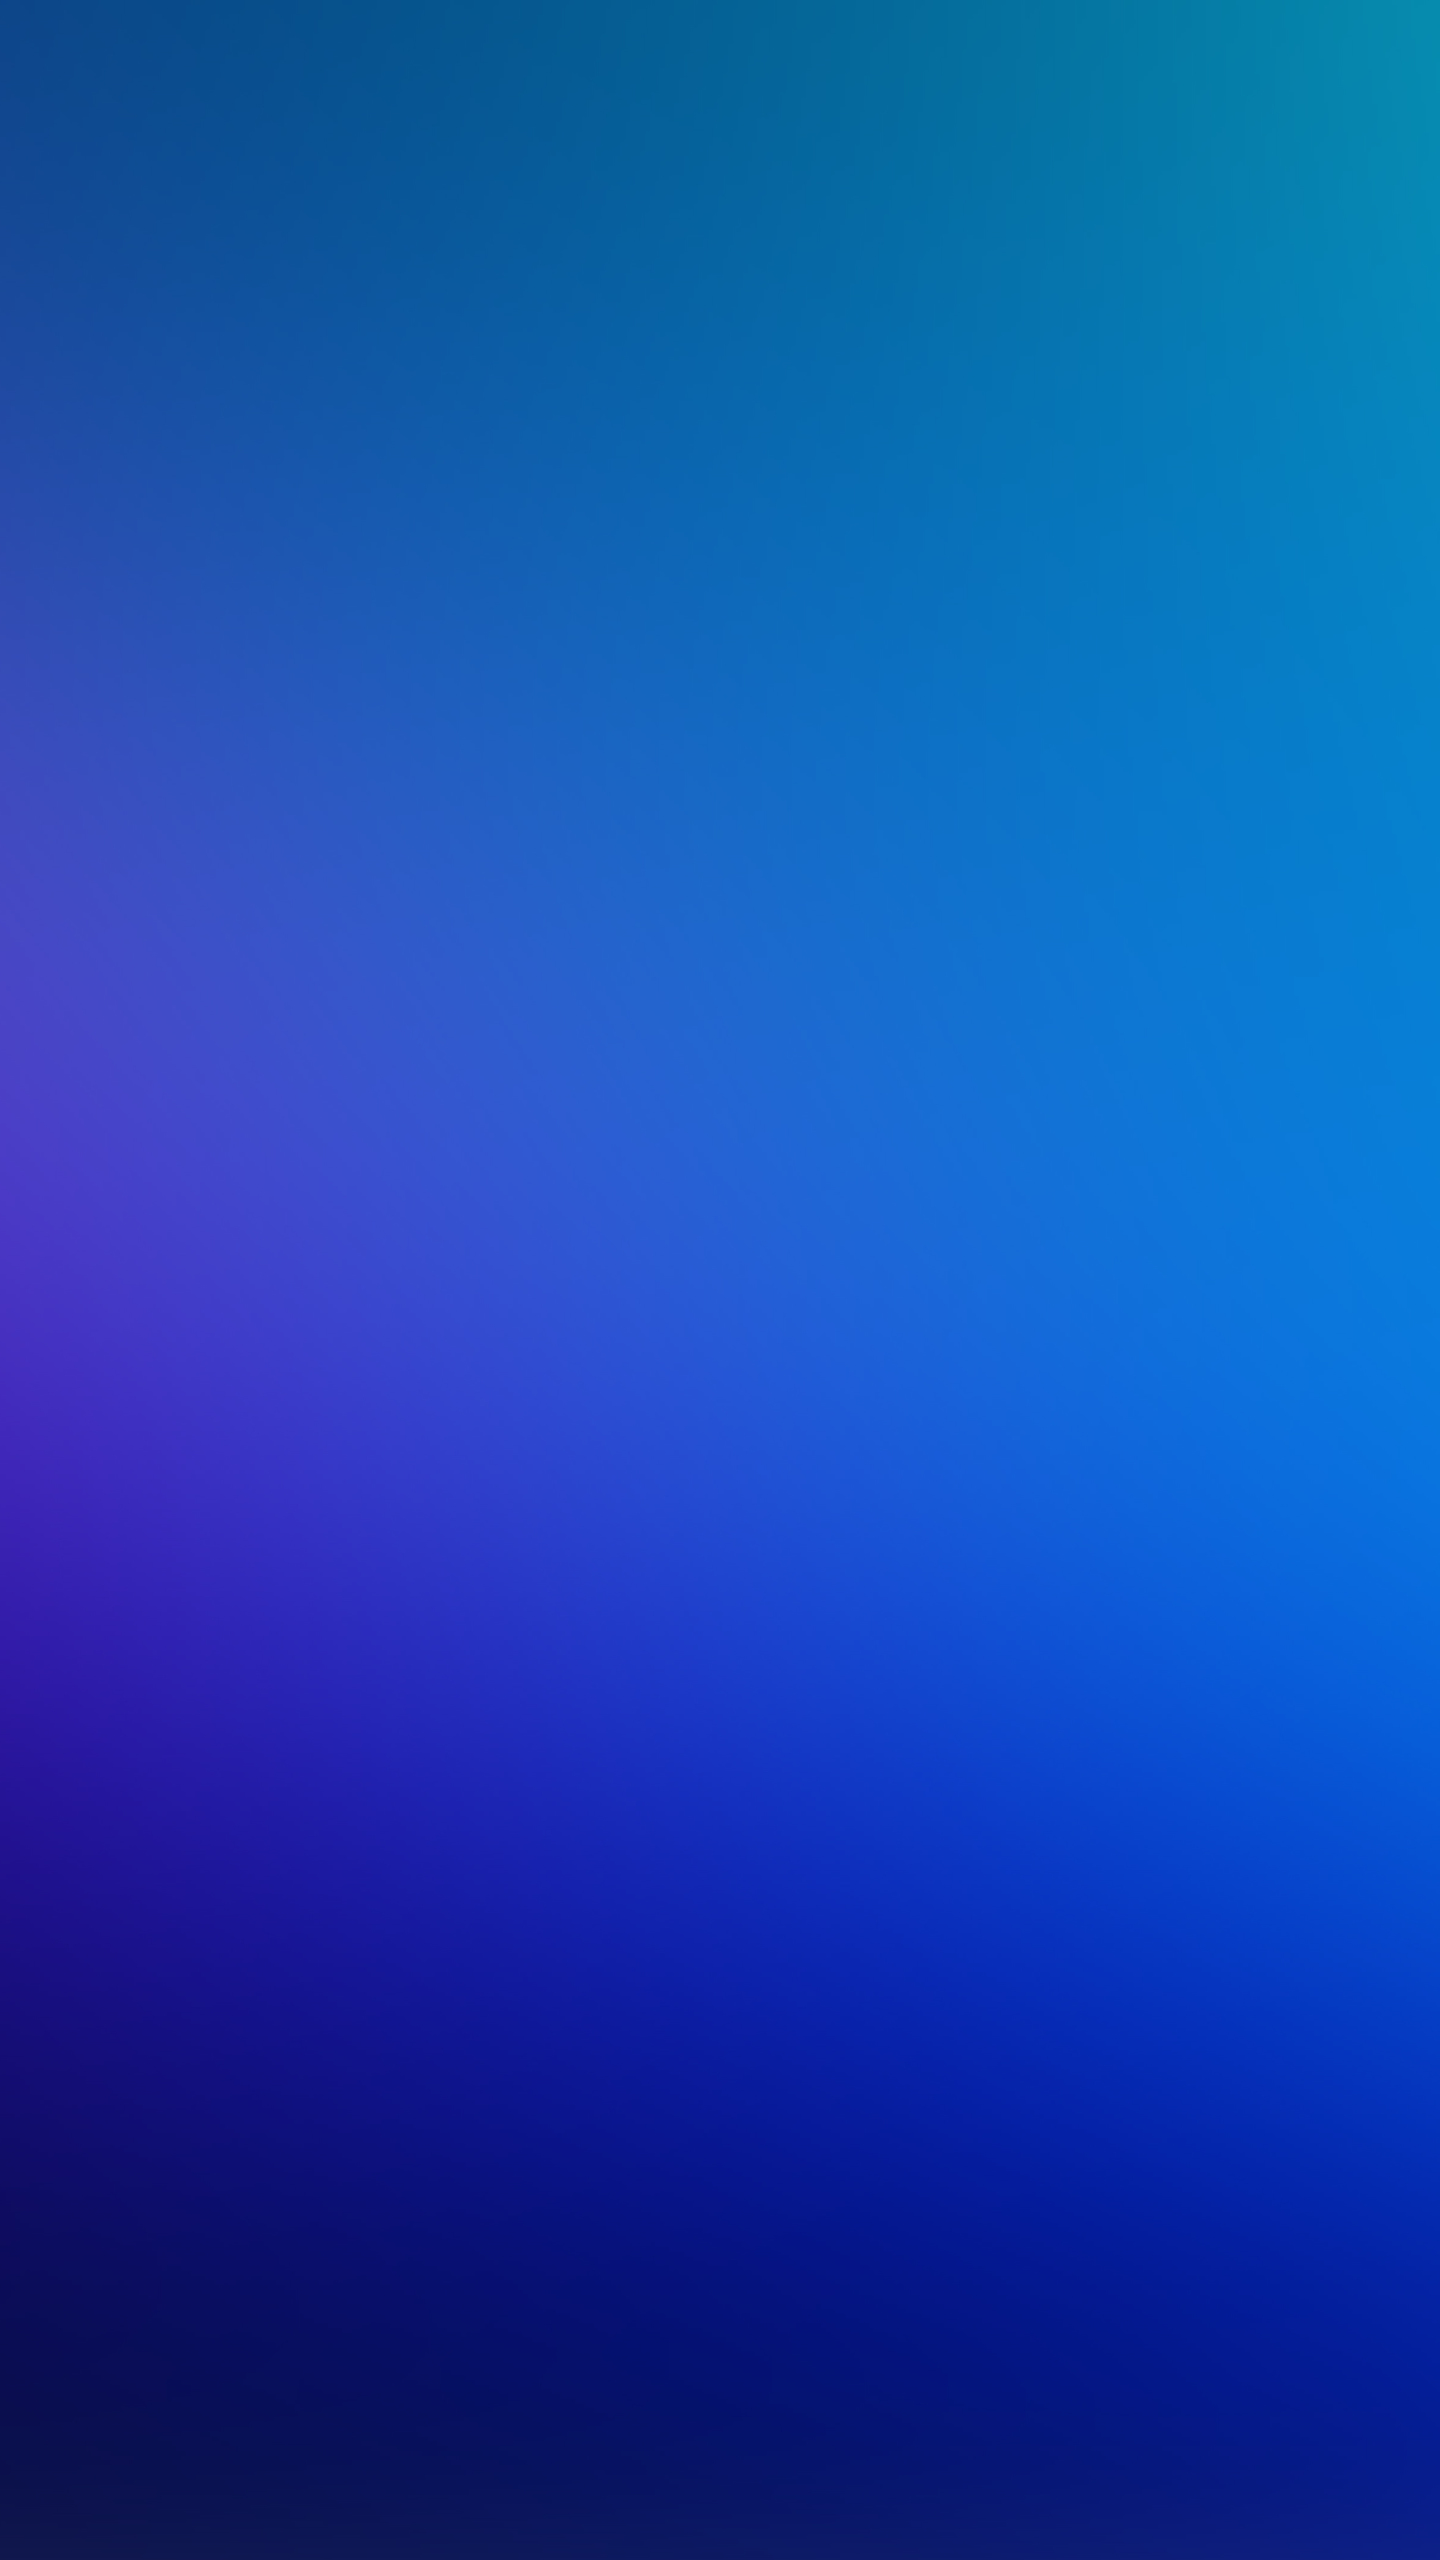 Blue Wallpaper Gradient Samsung 1440x2560 Wallpaper Teahub Io